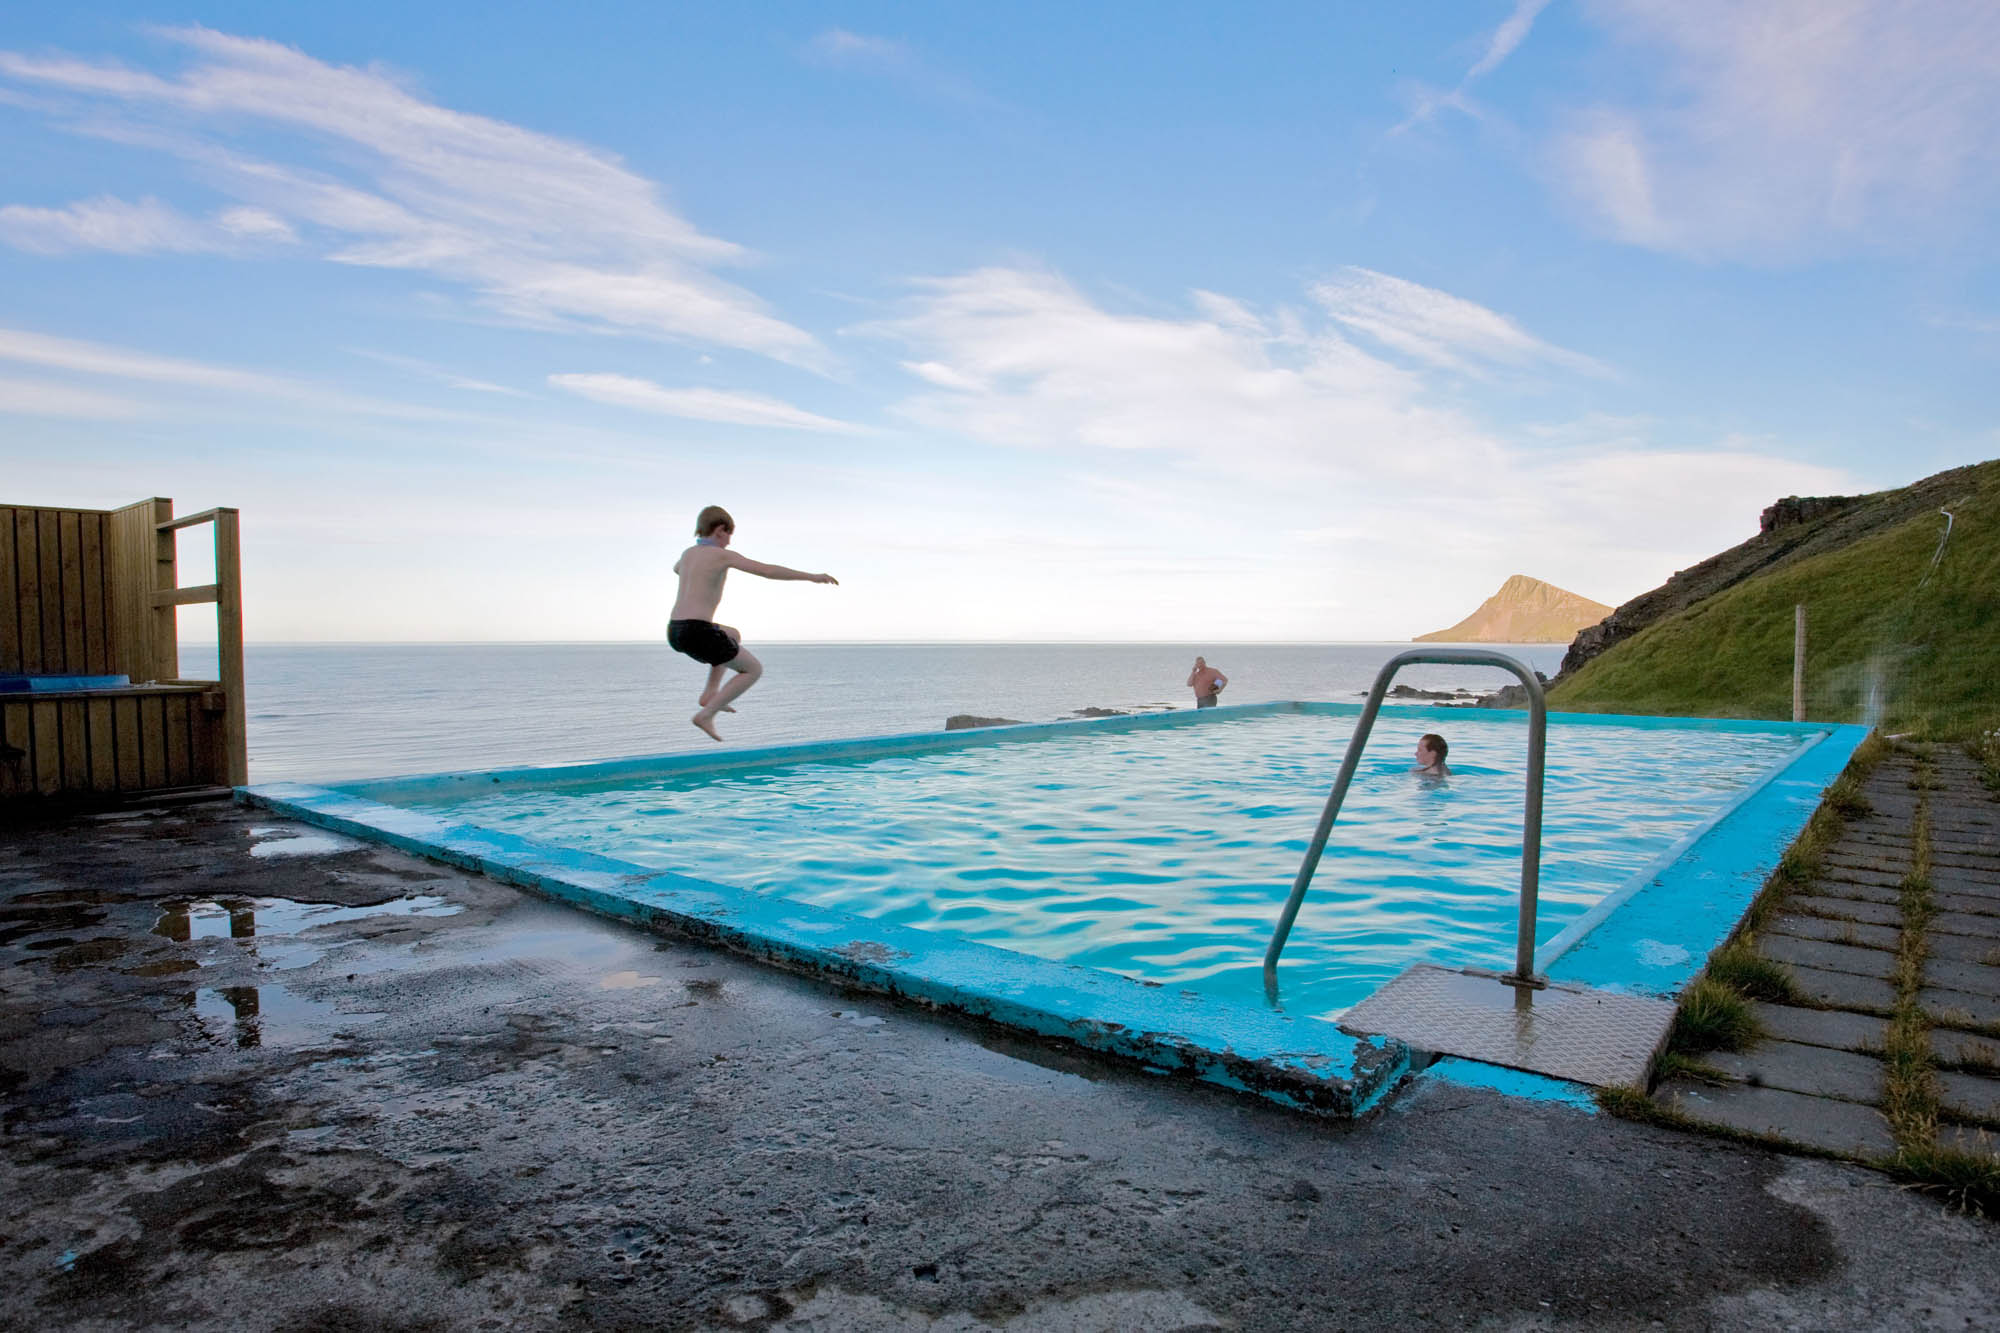 Person jumping into Krossneslaug pool in Strandir- Iceland Westfjords Tour